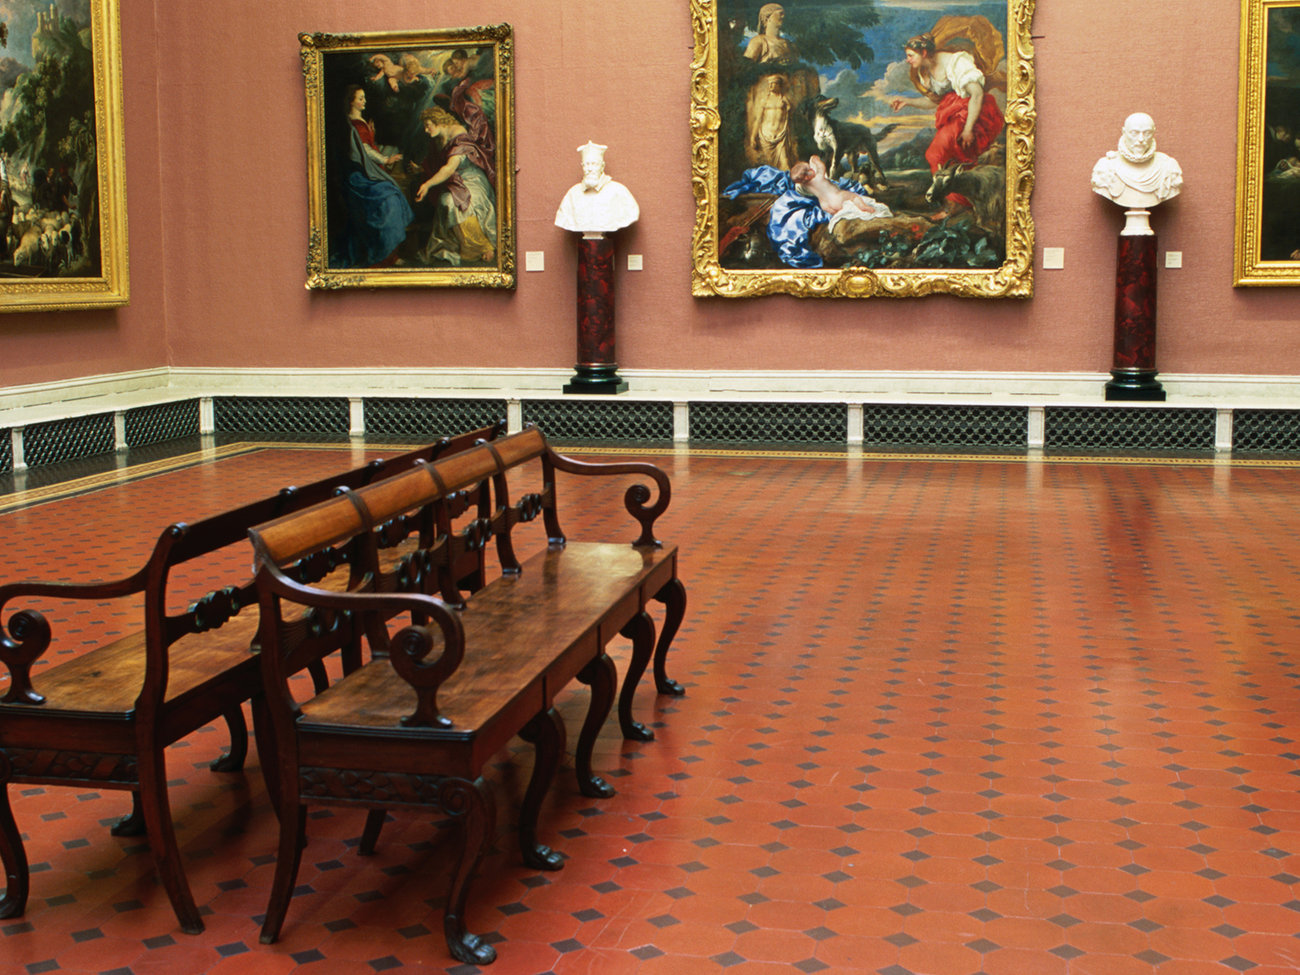 National Gallery of Ireland in Dublin